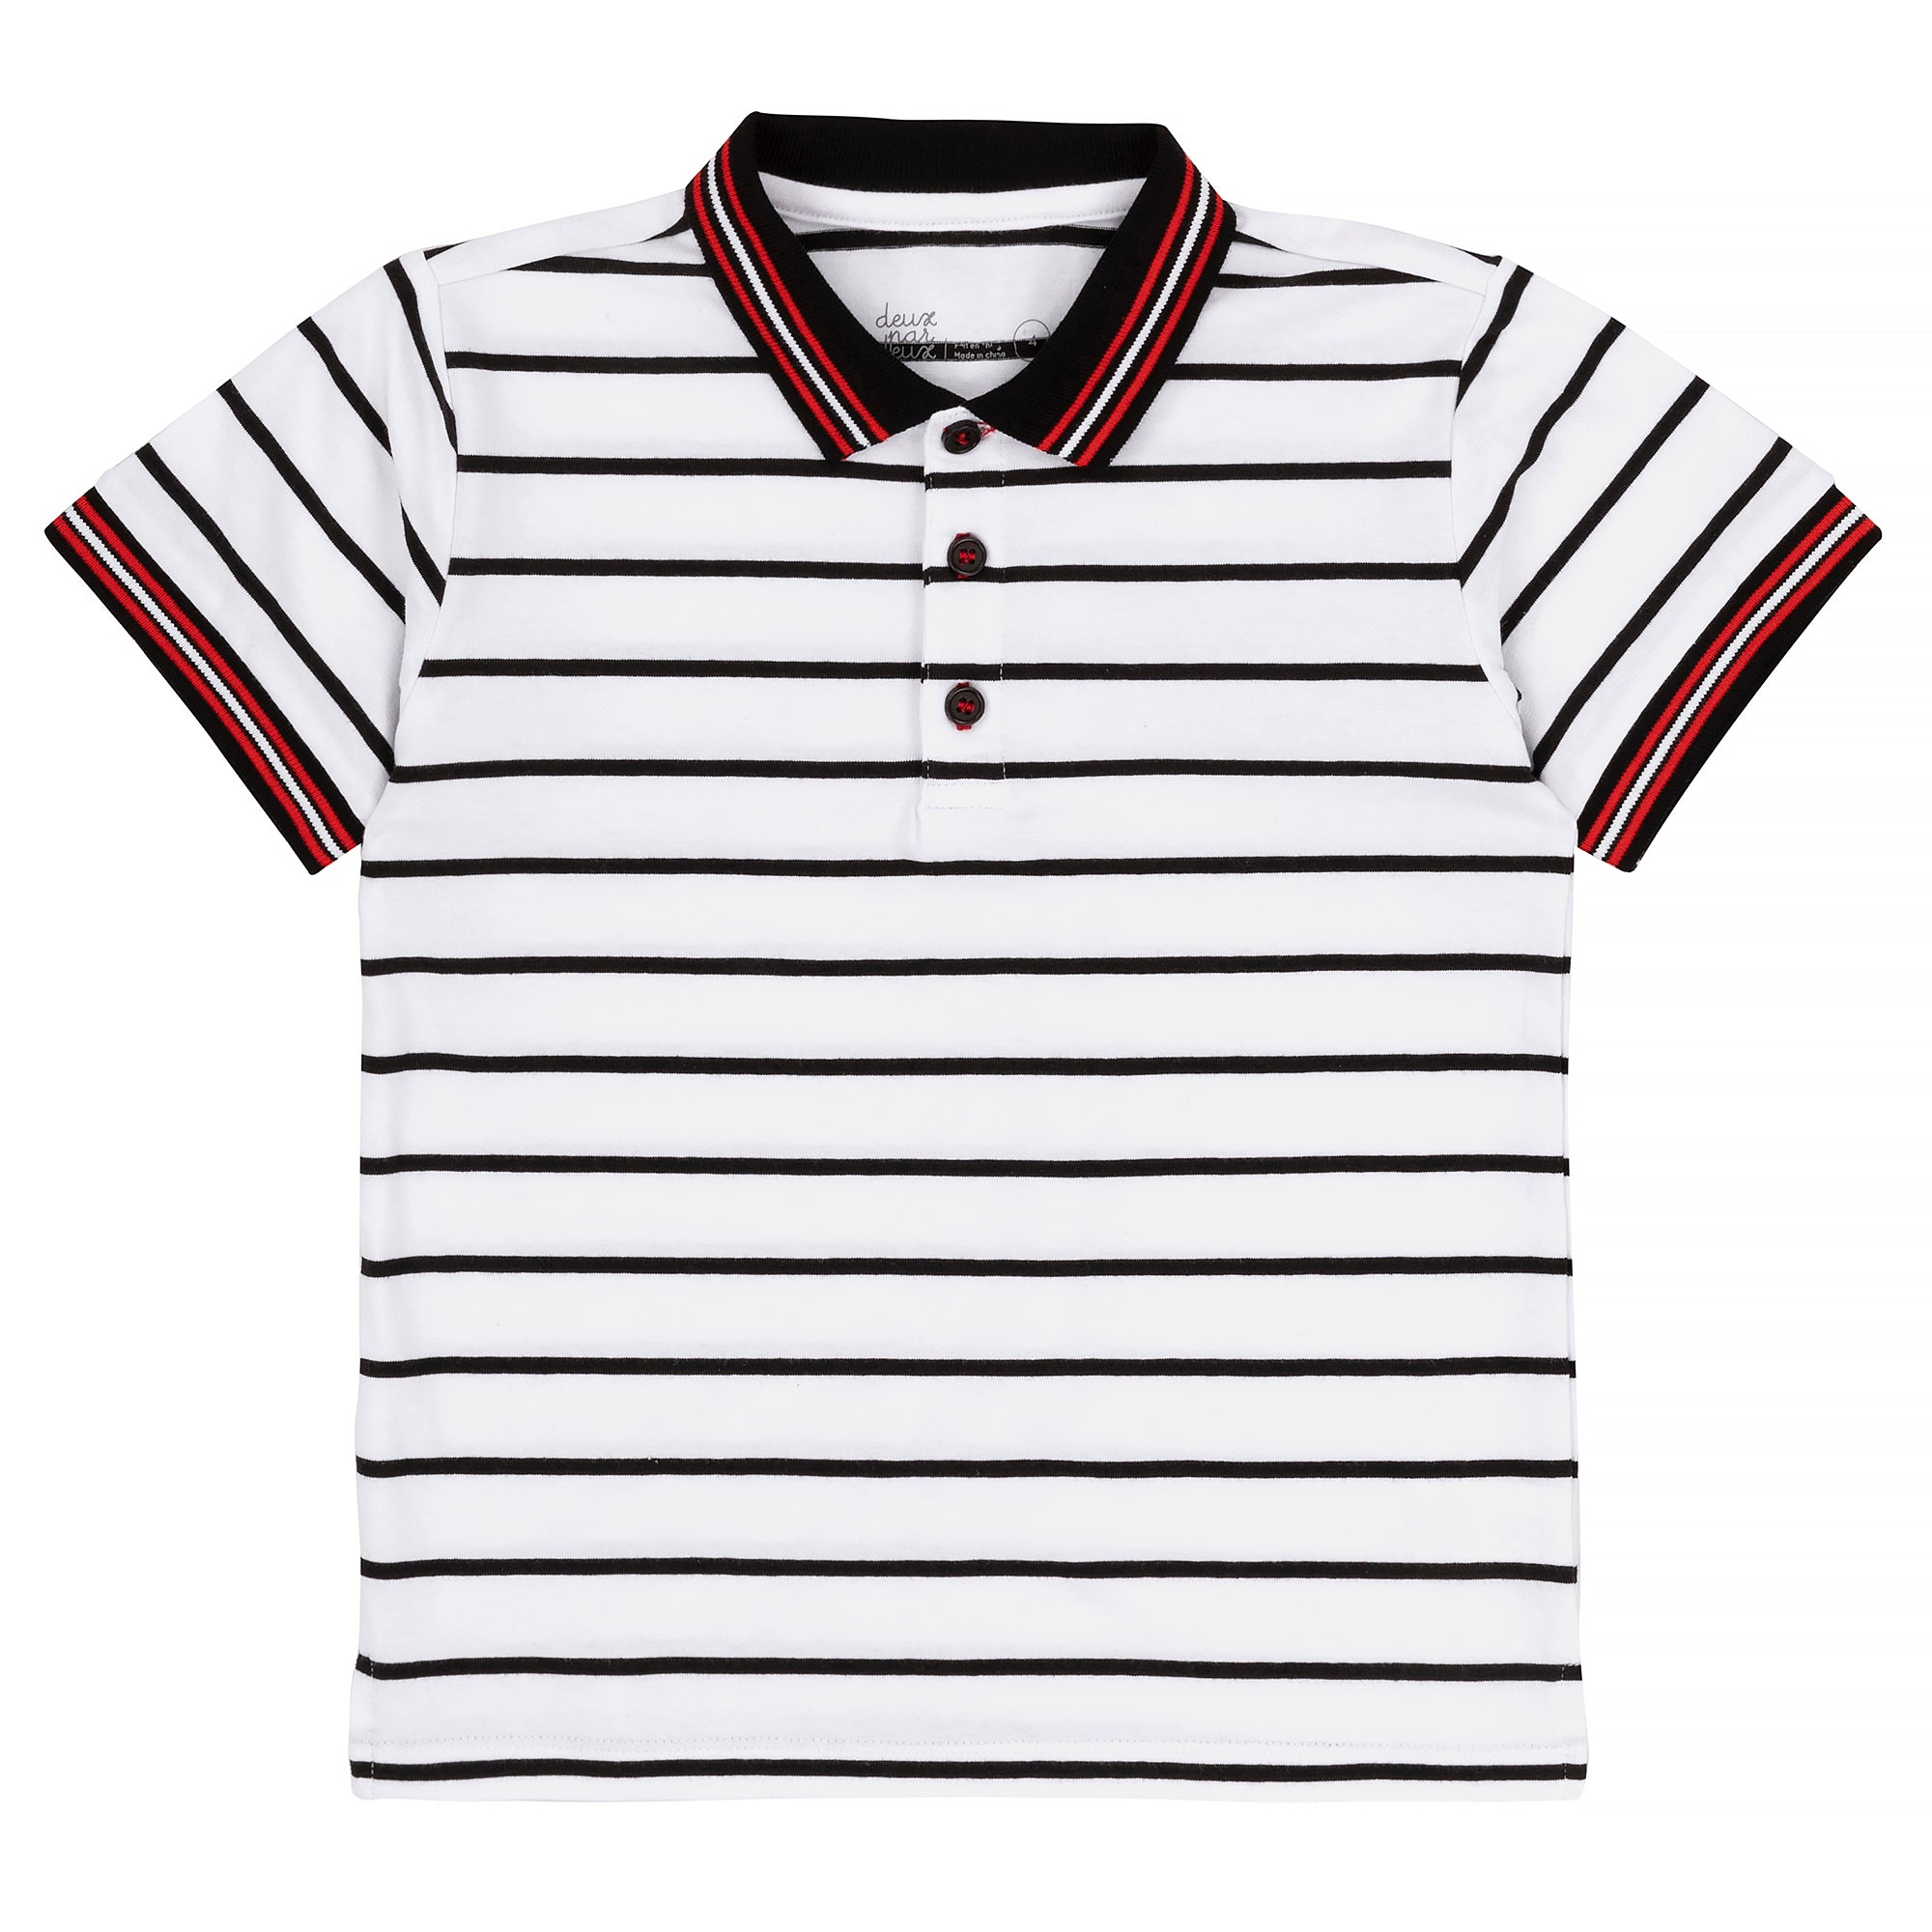 Boys Black and White Striped Polo Shirt